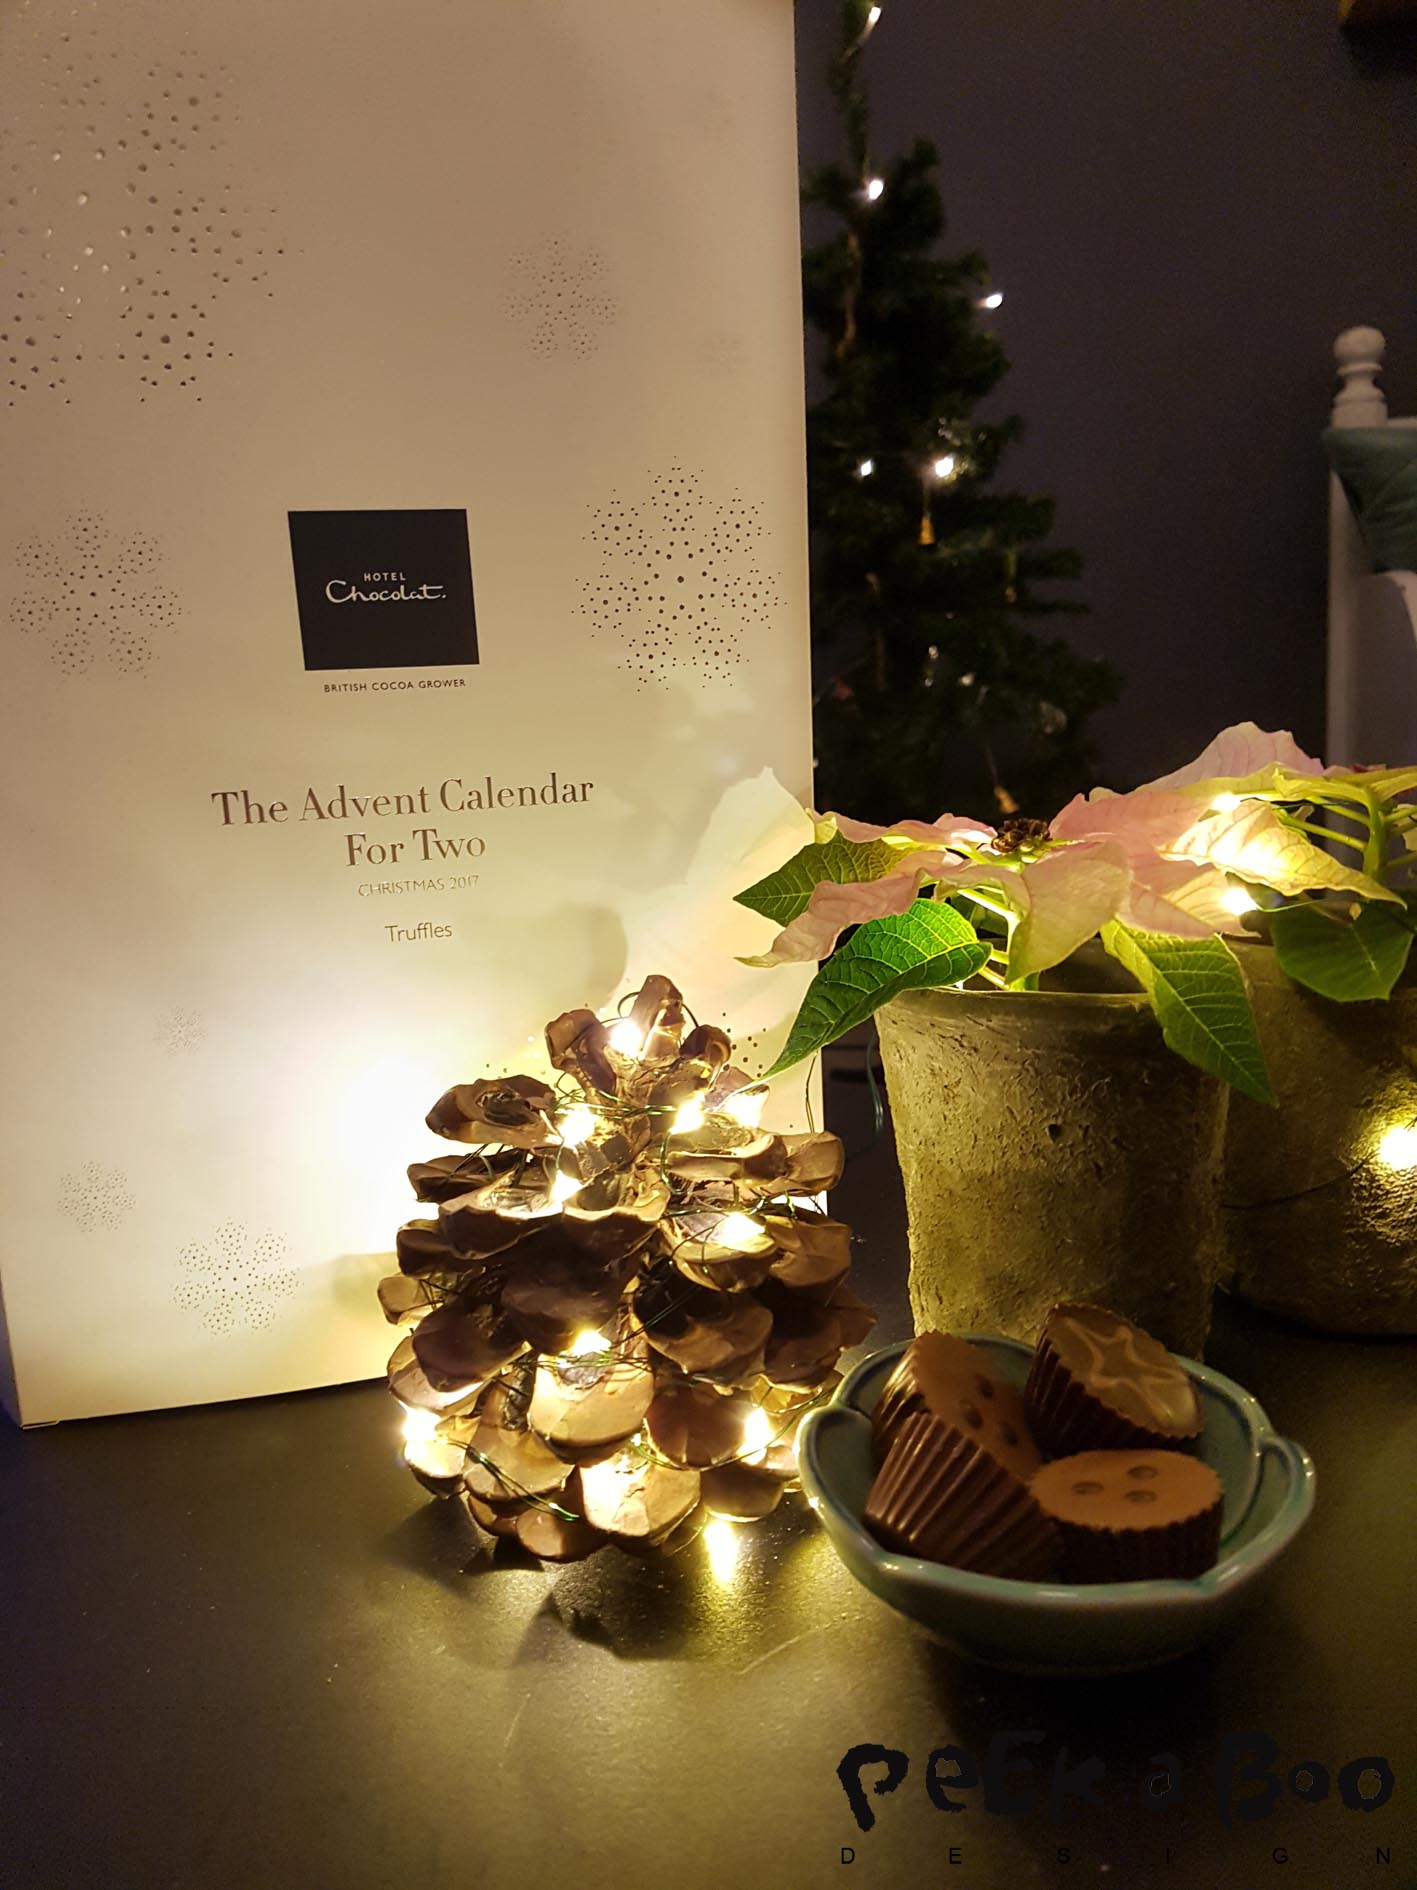 Giveaway on instagram...You can become the lucky winner of this Advent calendar for two from Hotel Chocolat